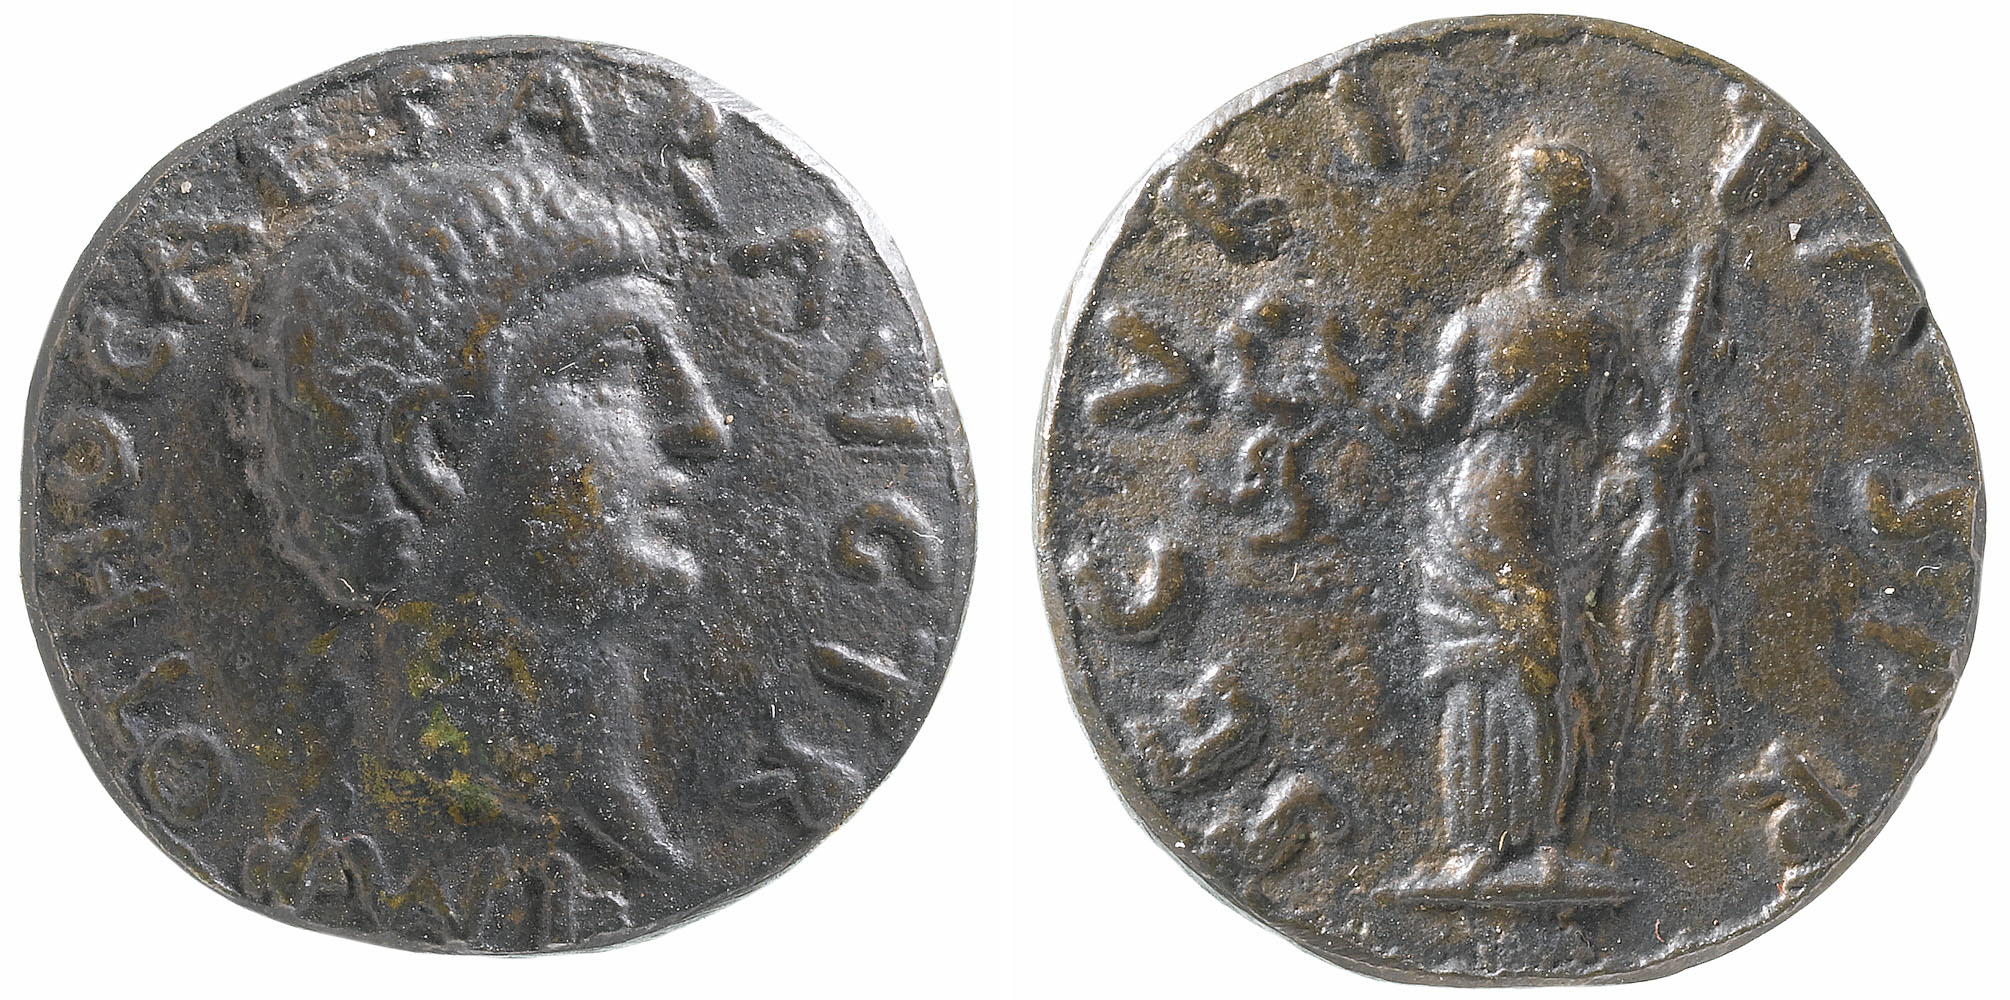 a photo of both sides of a roman styled coin